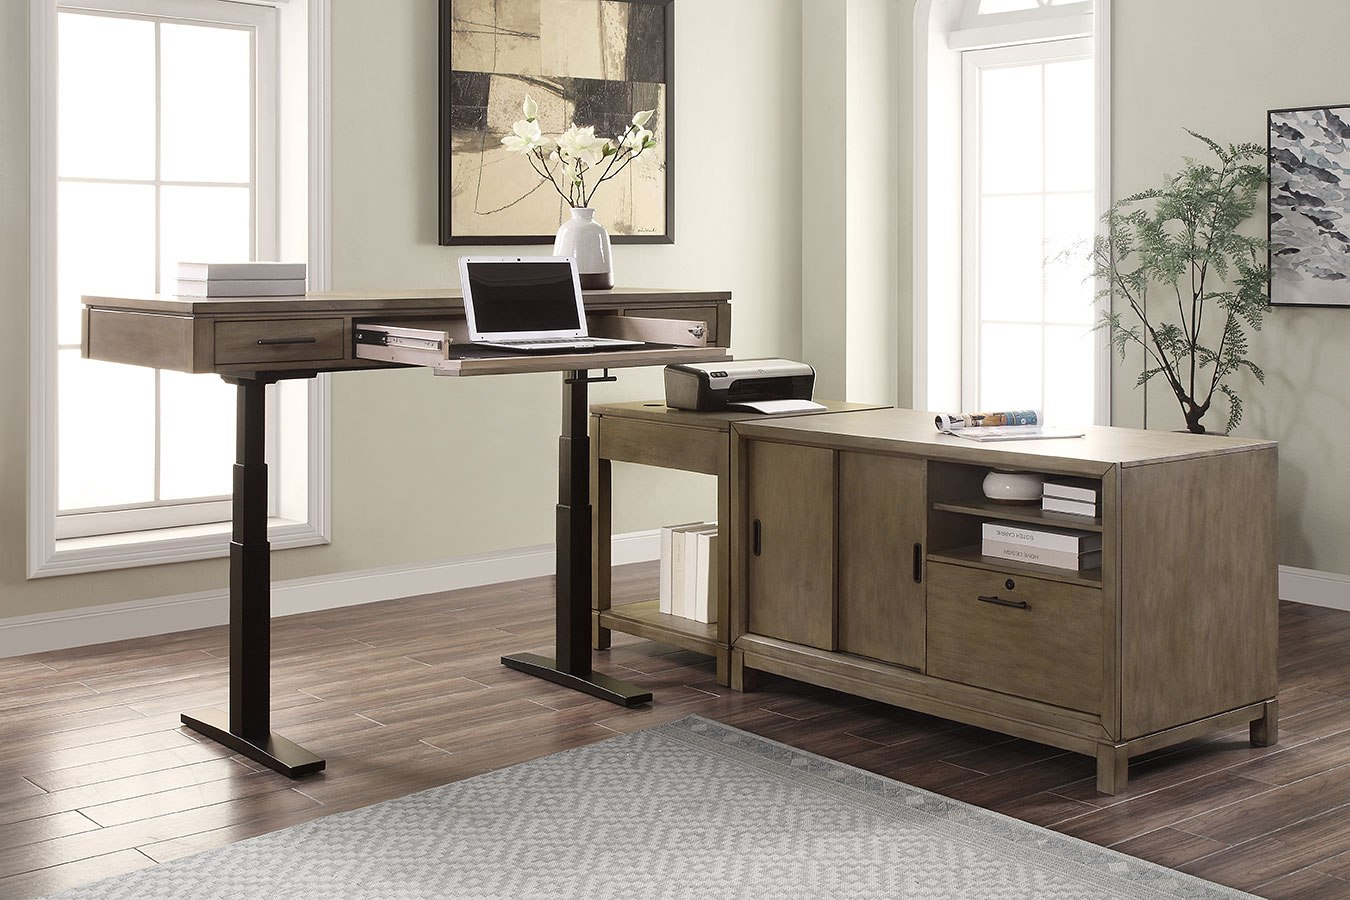 Midtown Modular Home Office Set W/ Power Lift Desk